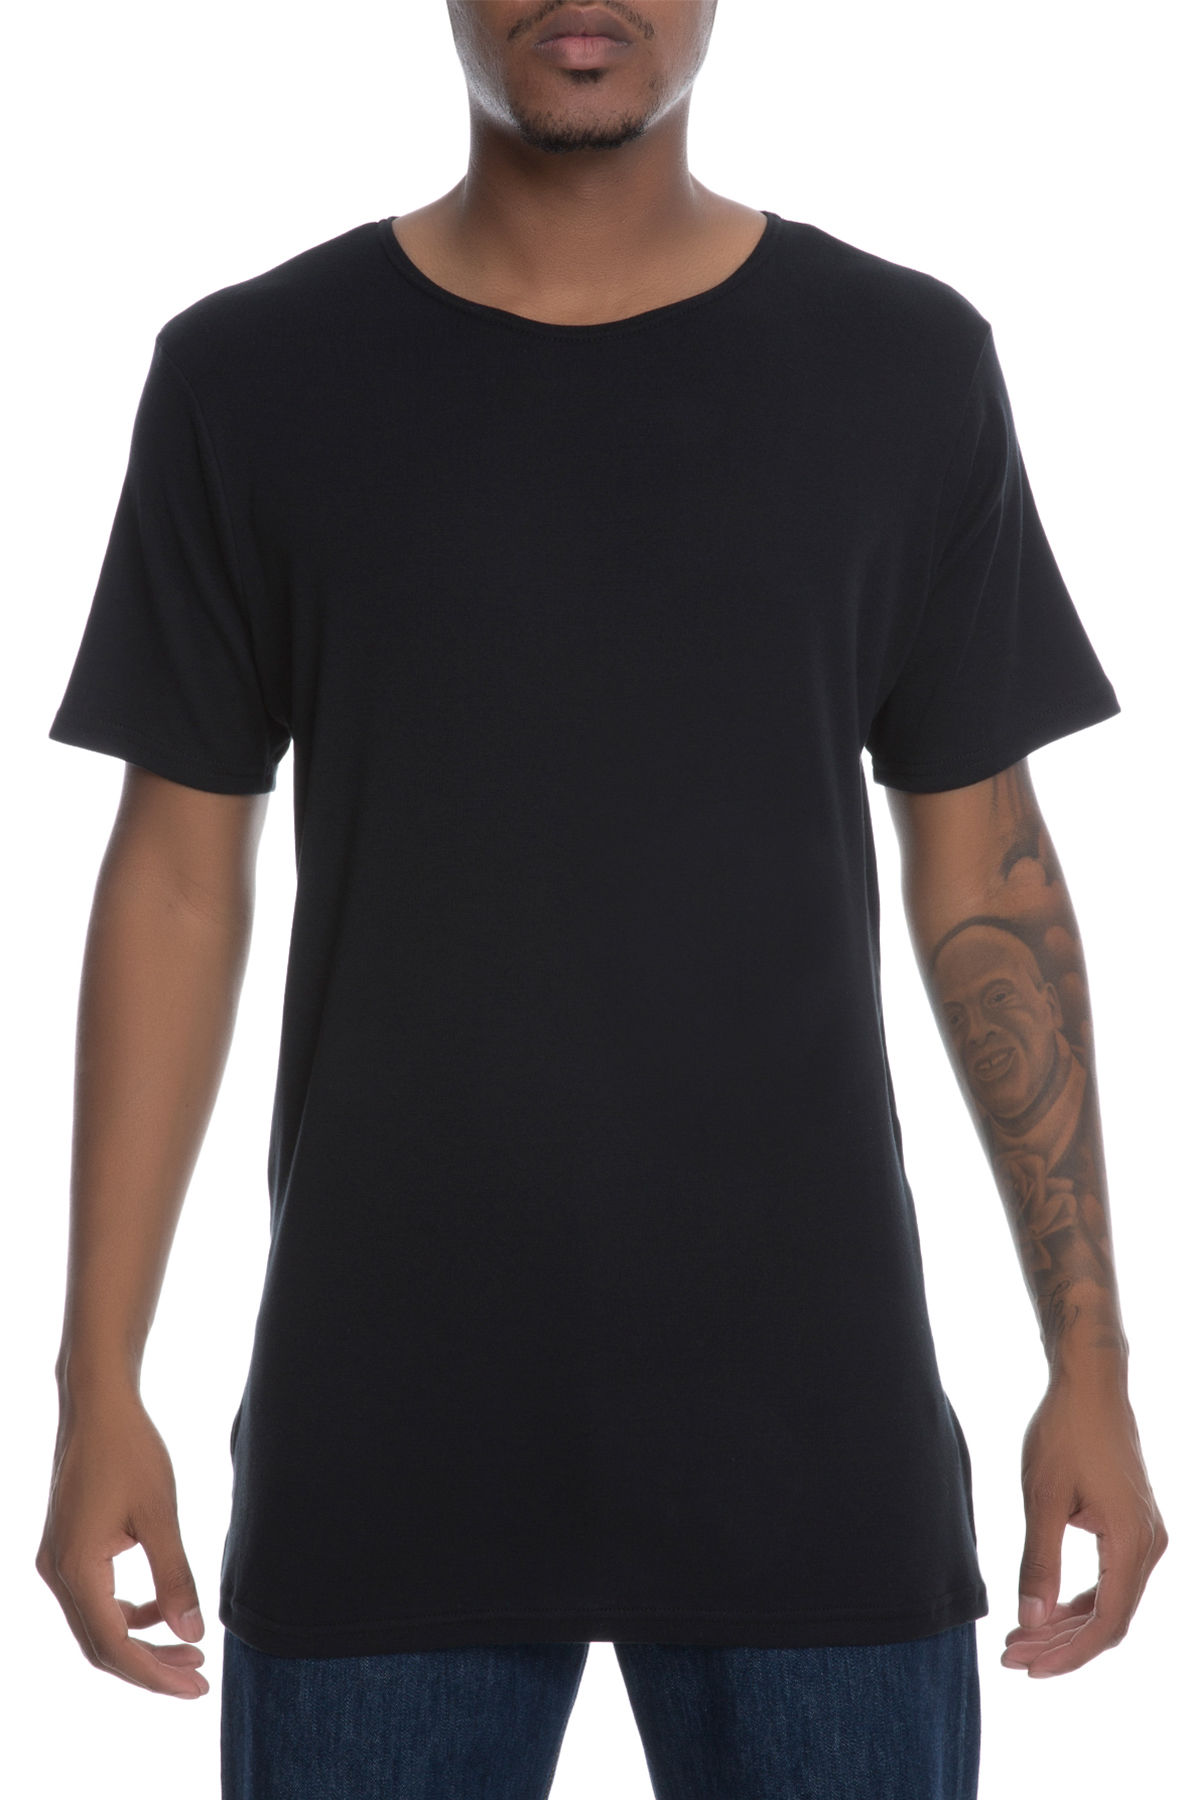 Image of The Swish Short Sleeve Elongated Tee in Black